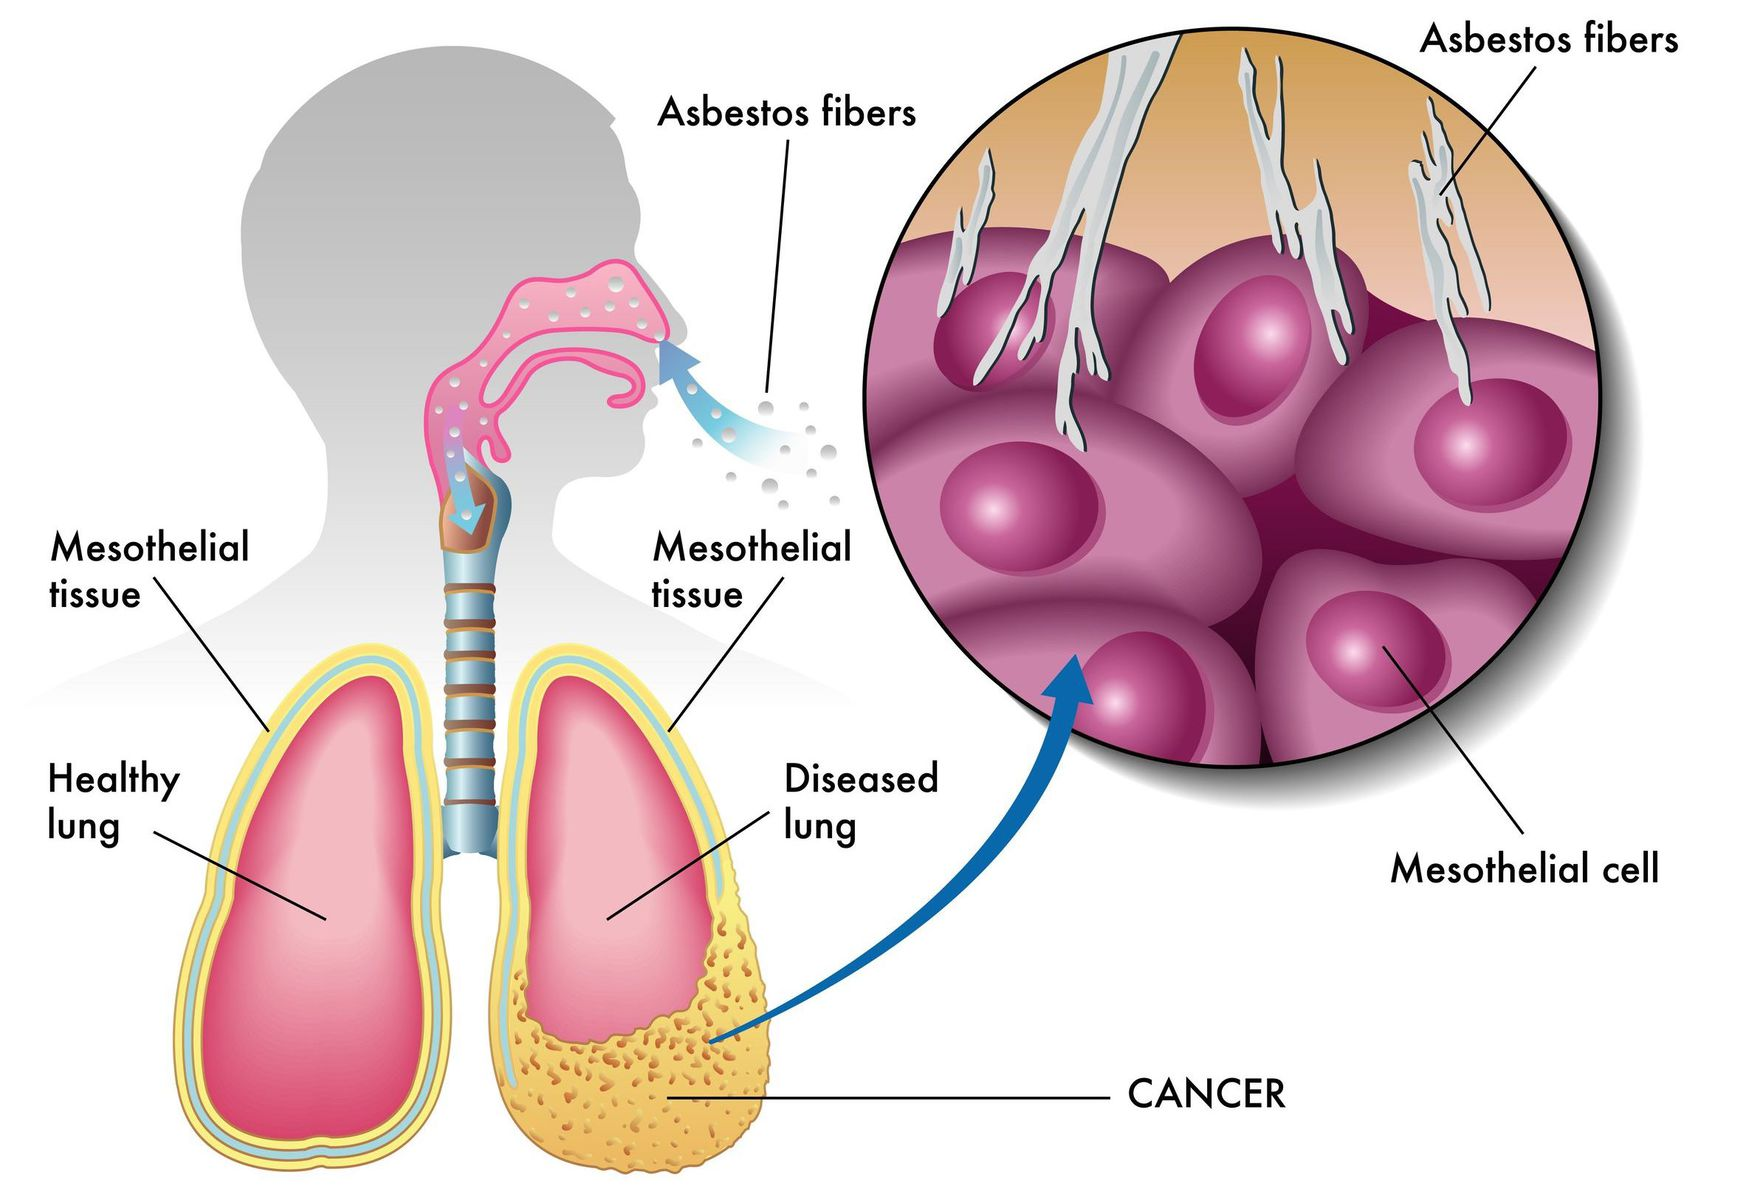 mesothelioma caused by asbestos